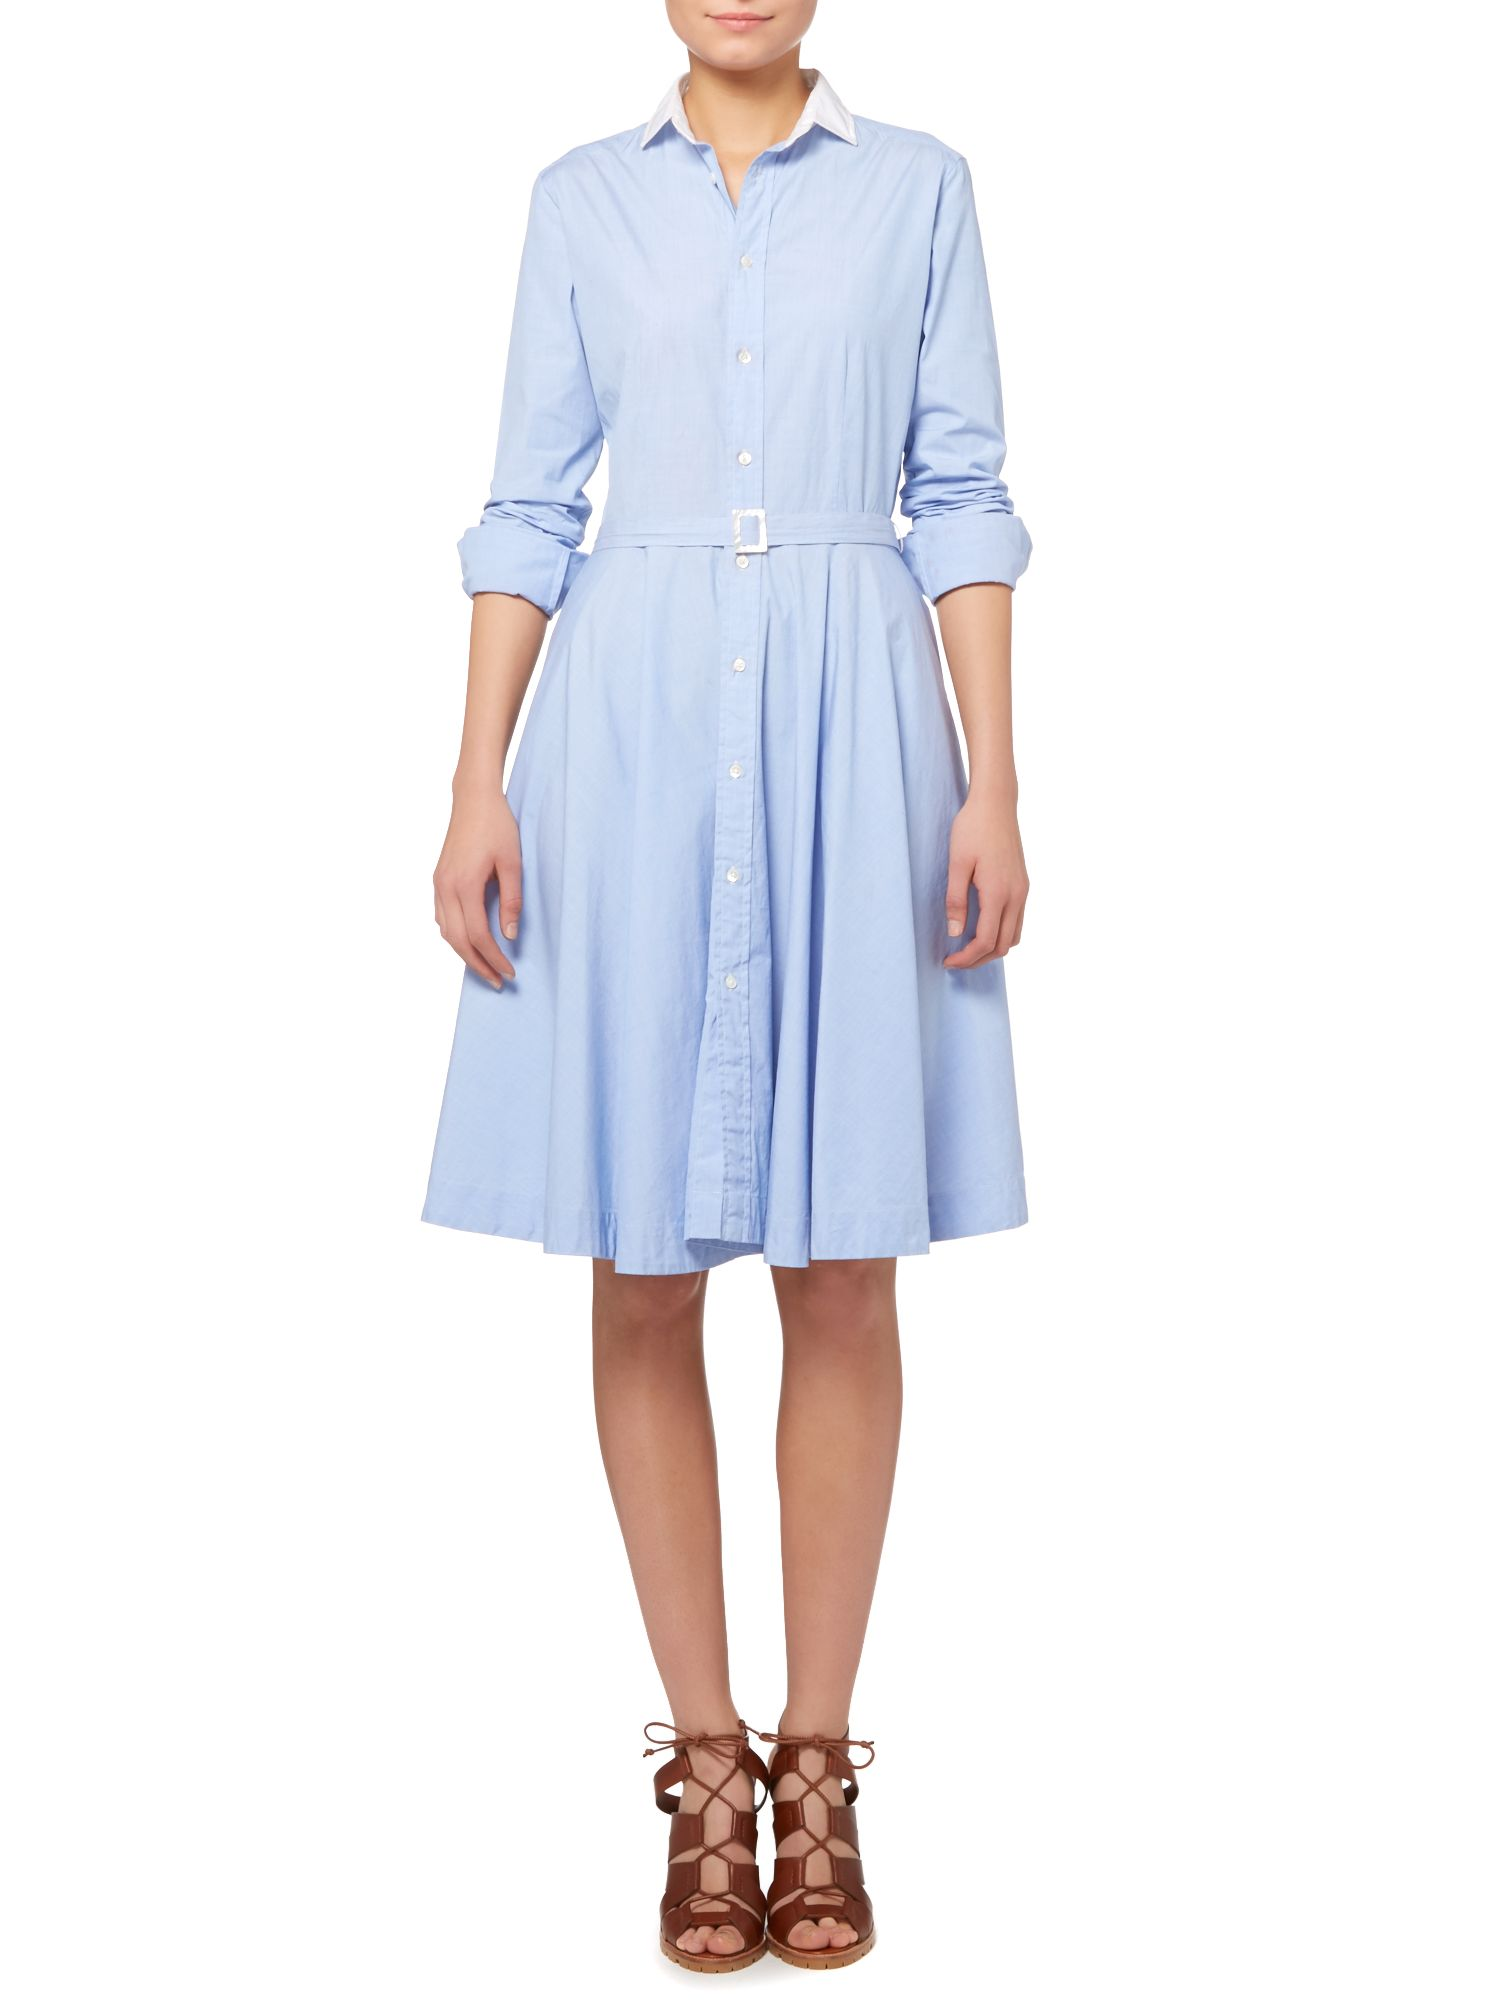 ... Polo Ralph Lauren Dori long sleeve shirt dress with white collar